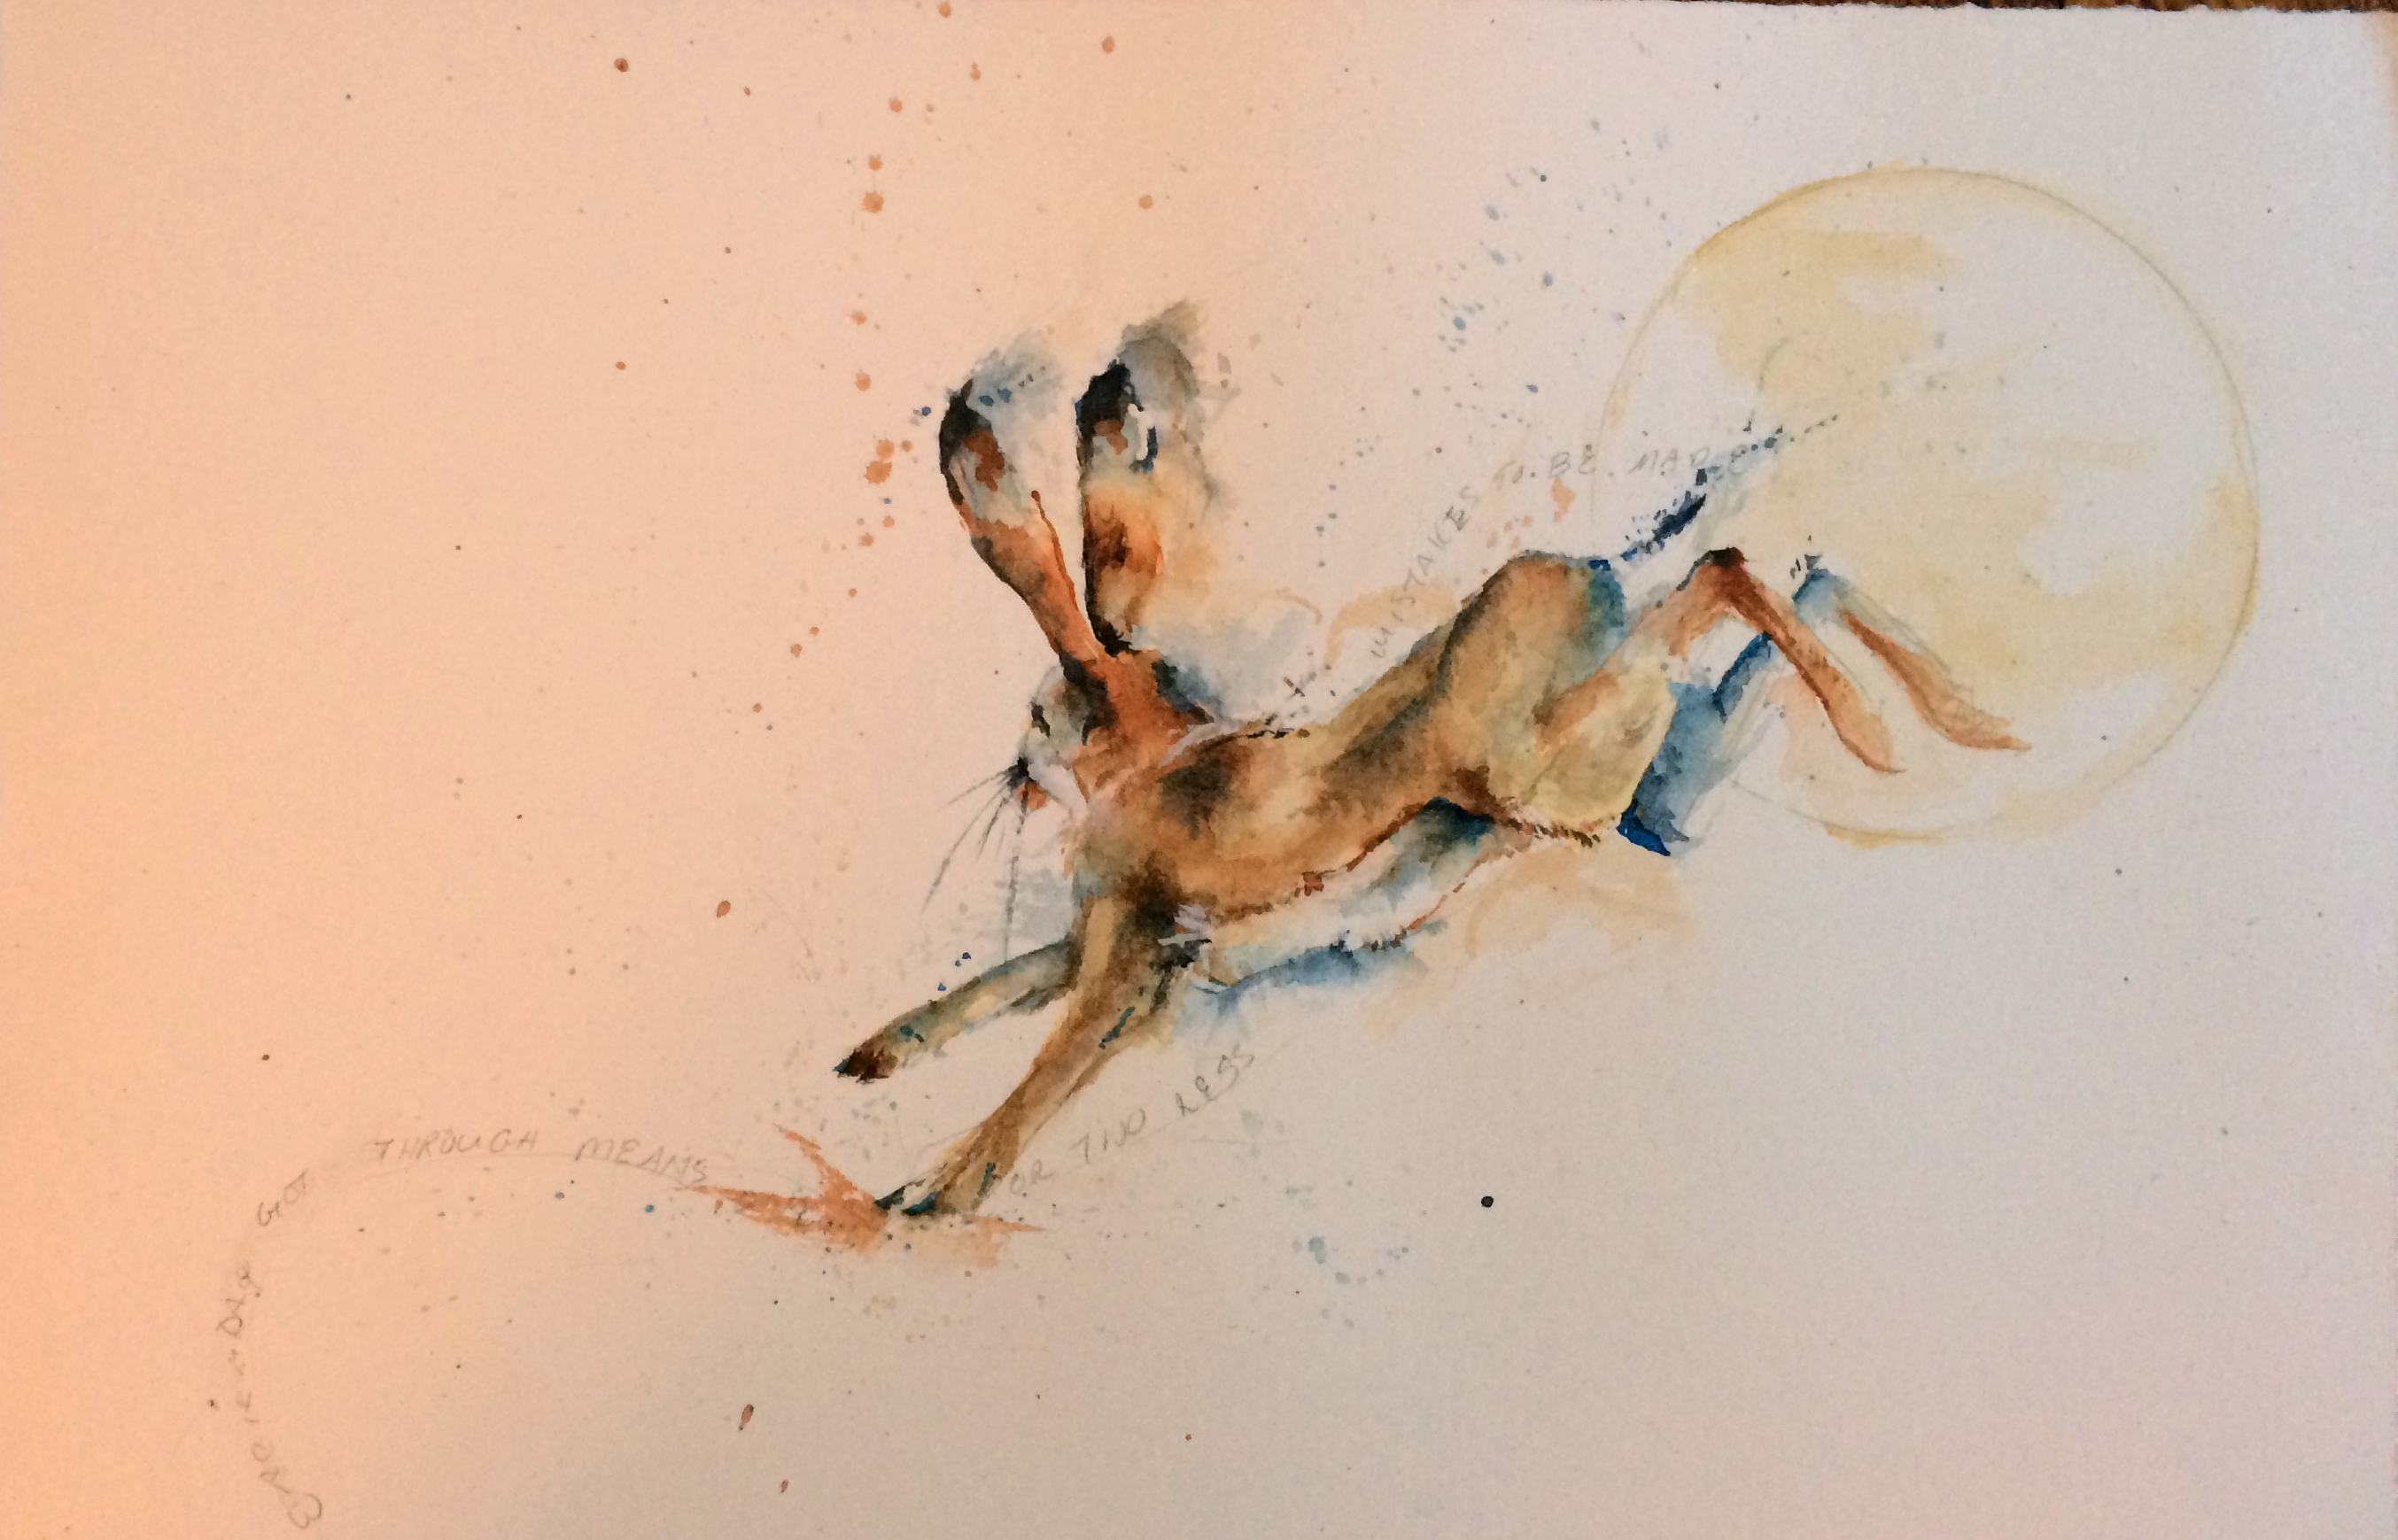 Rabbit Jumping from the Moon Small Watercolor Painting